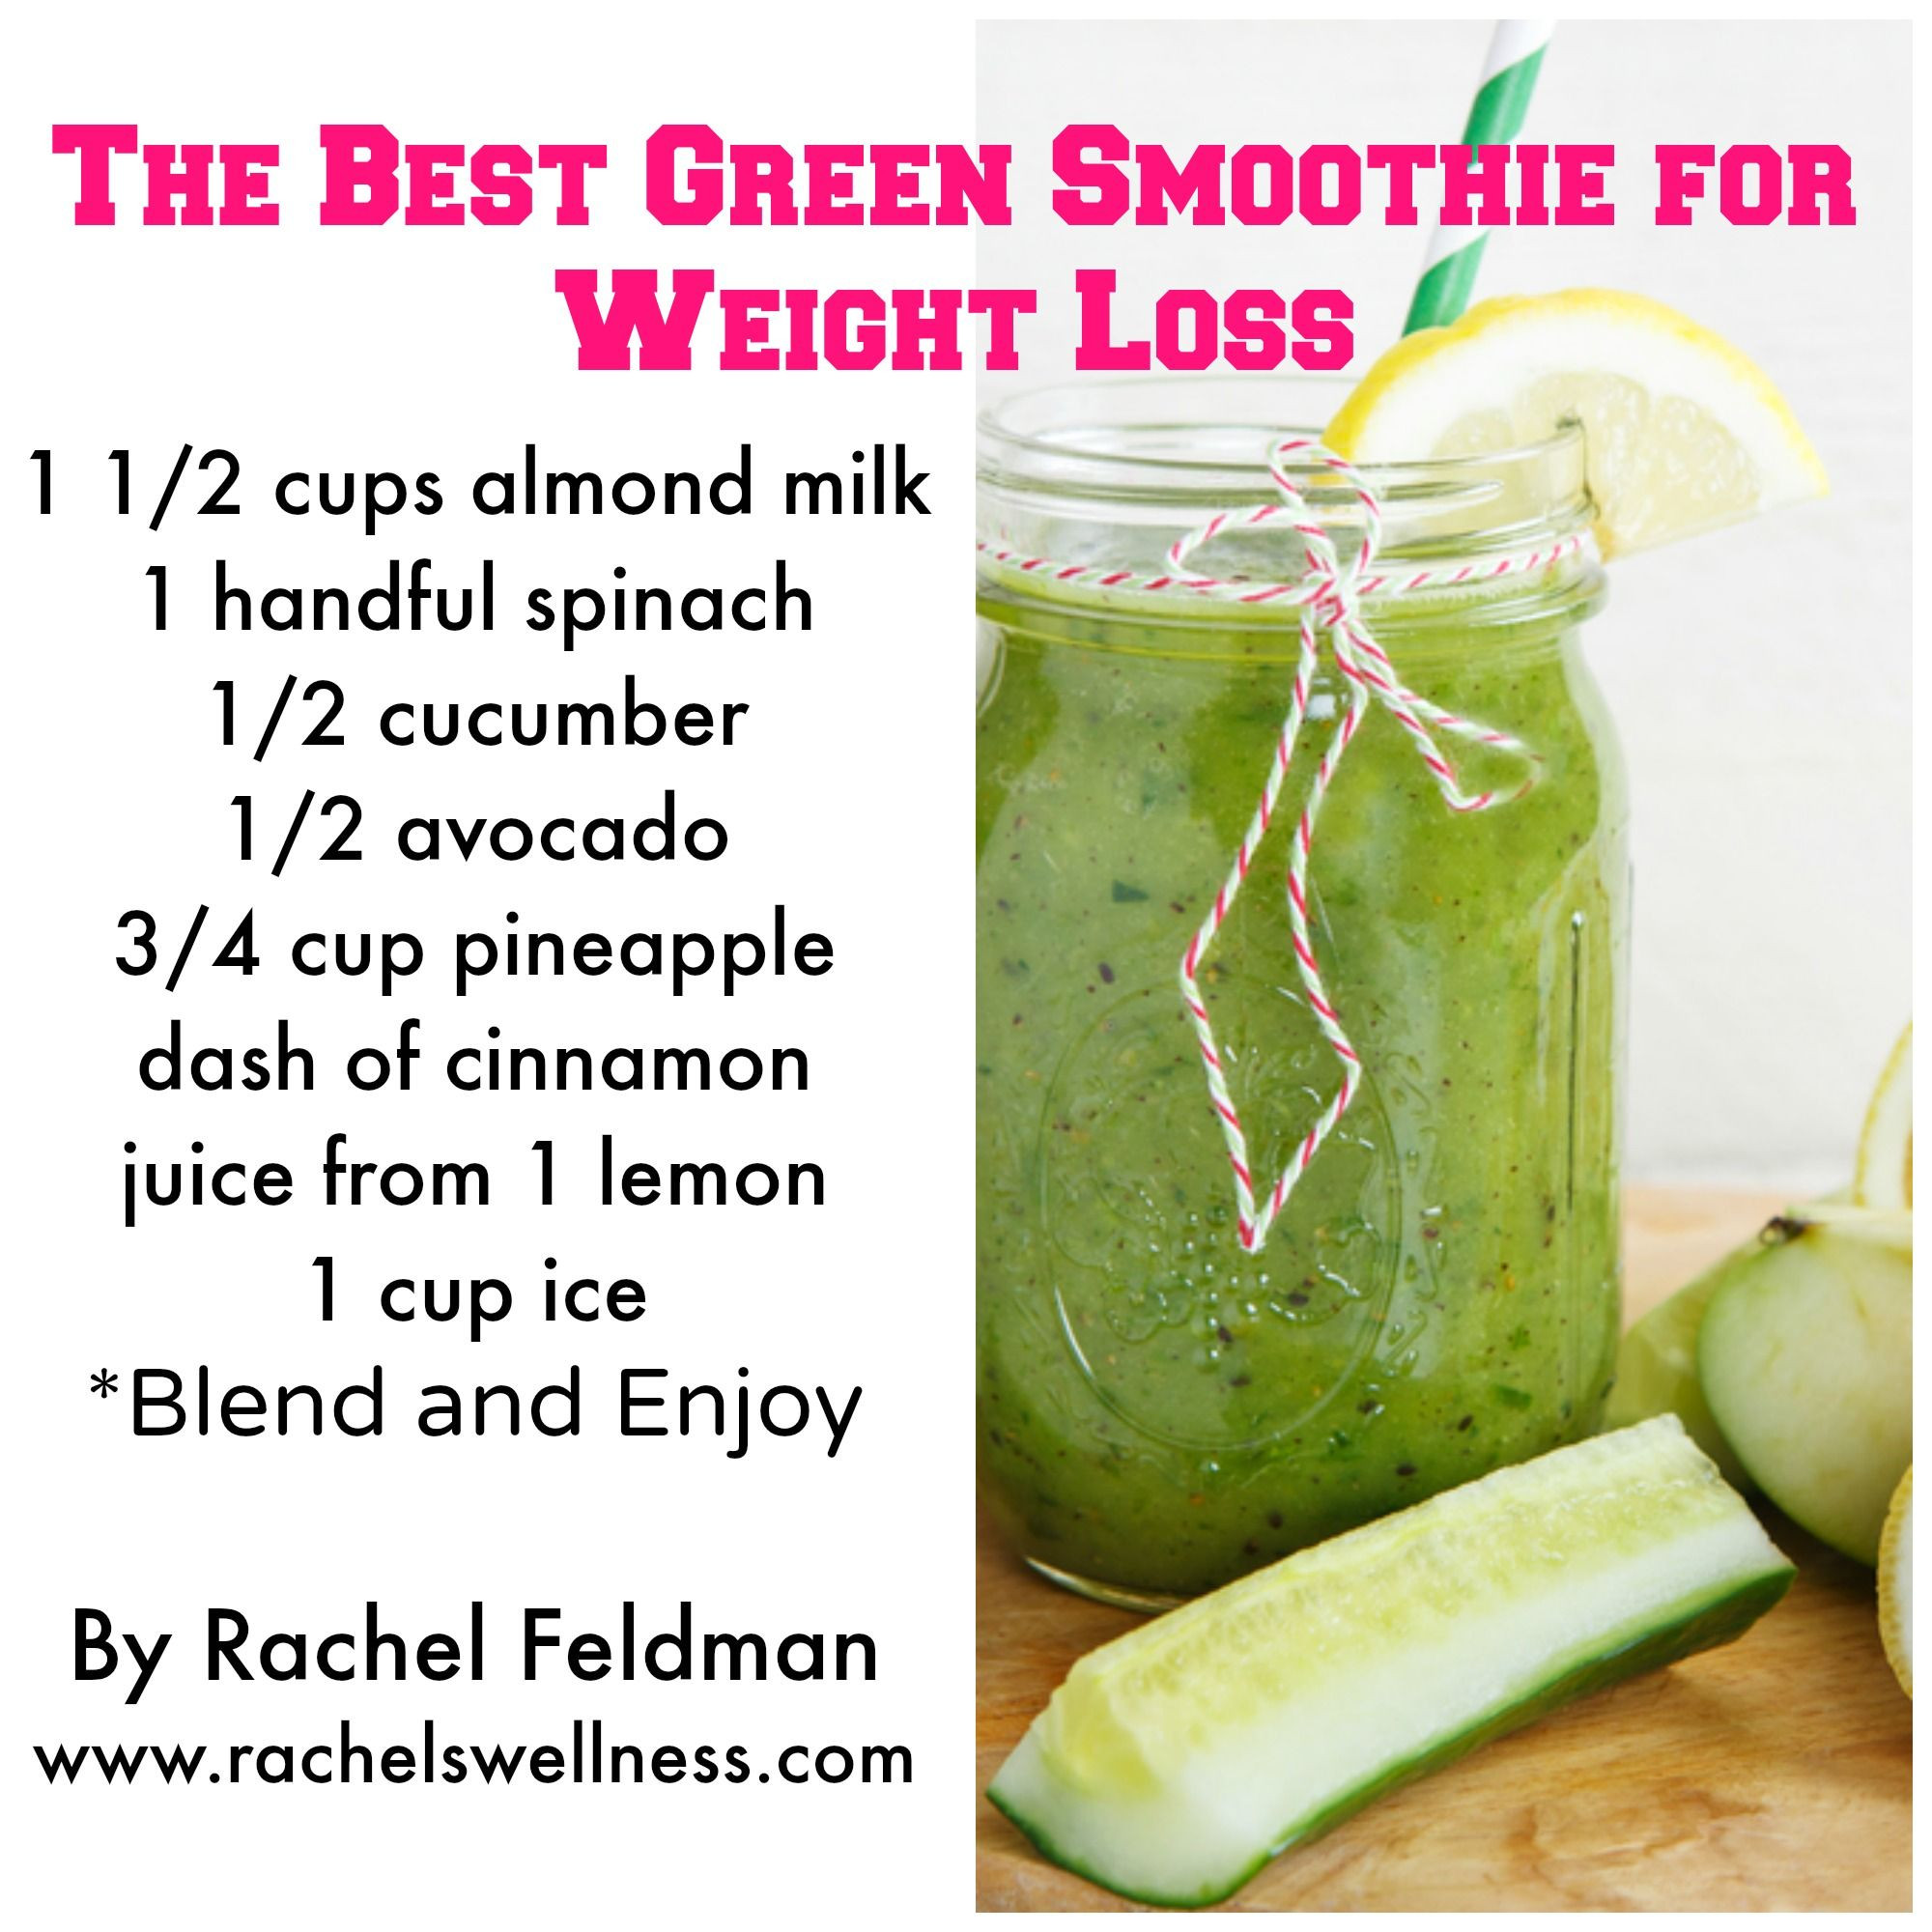 Smoothie Diet Recipes For Weight Loss  7 Healthy Green Smoothie Recipes For Weight Loss